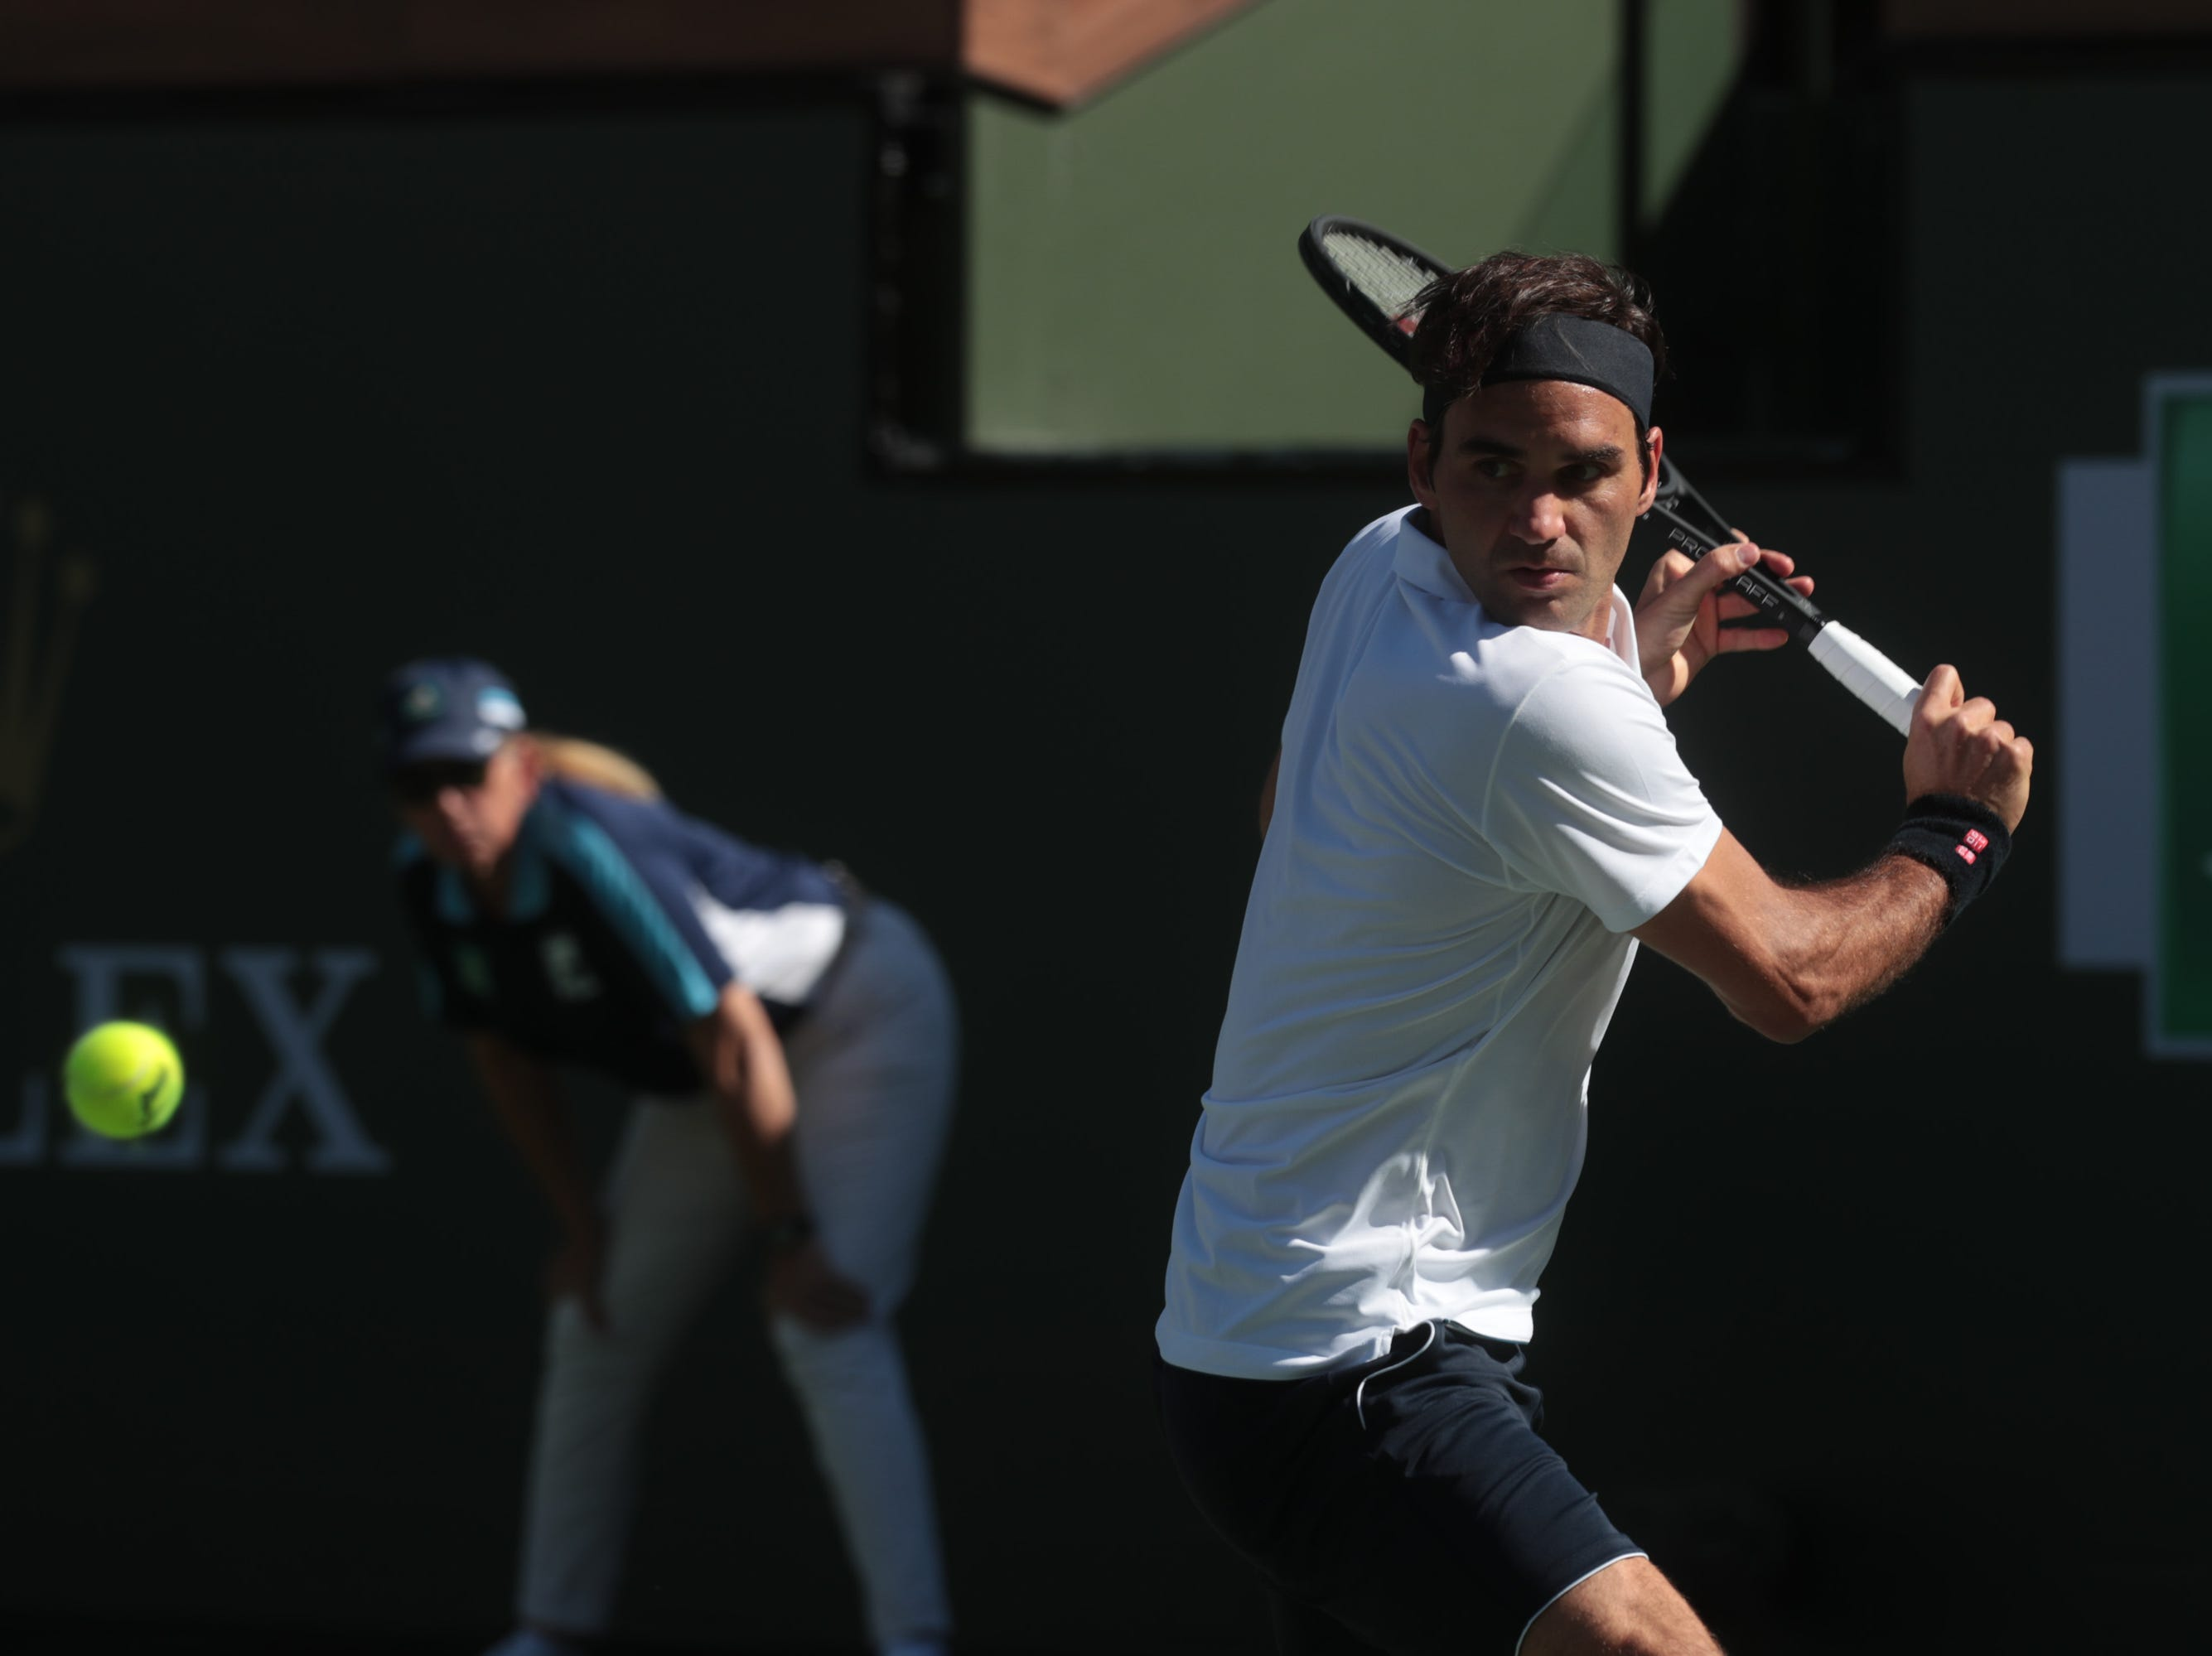 Roger Federer prepares to hit a backhand to Kyle Edmund at the BNP Paribas Open in Indian Wells, Calif., March 13, 2019.